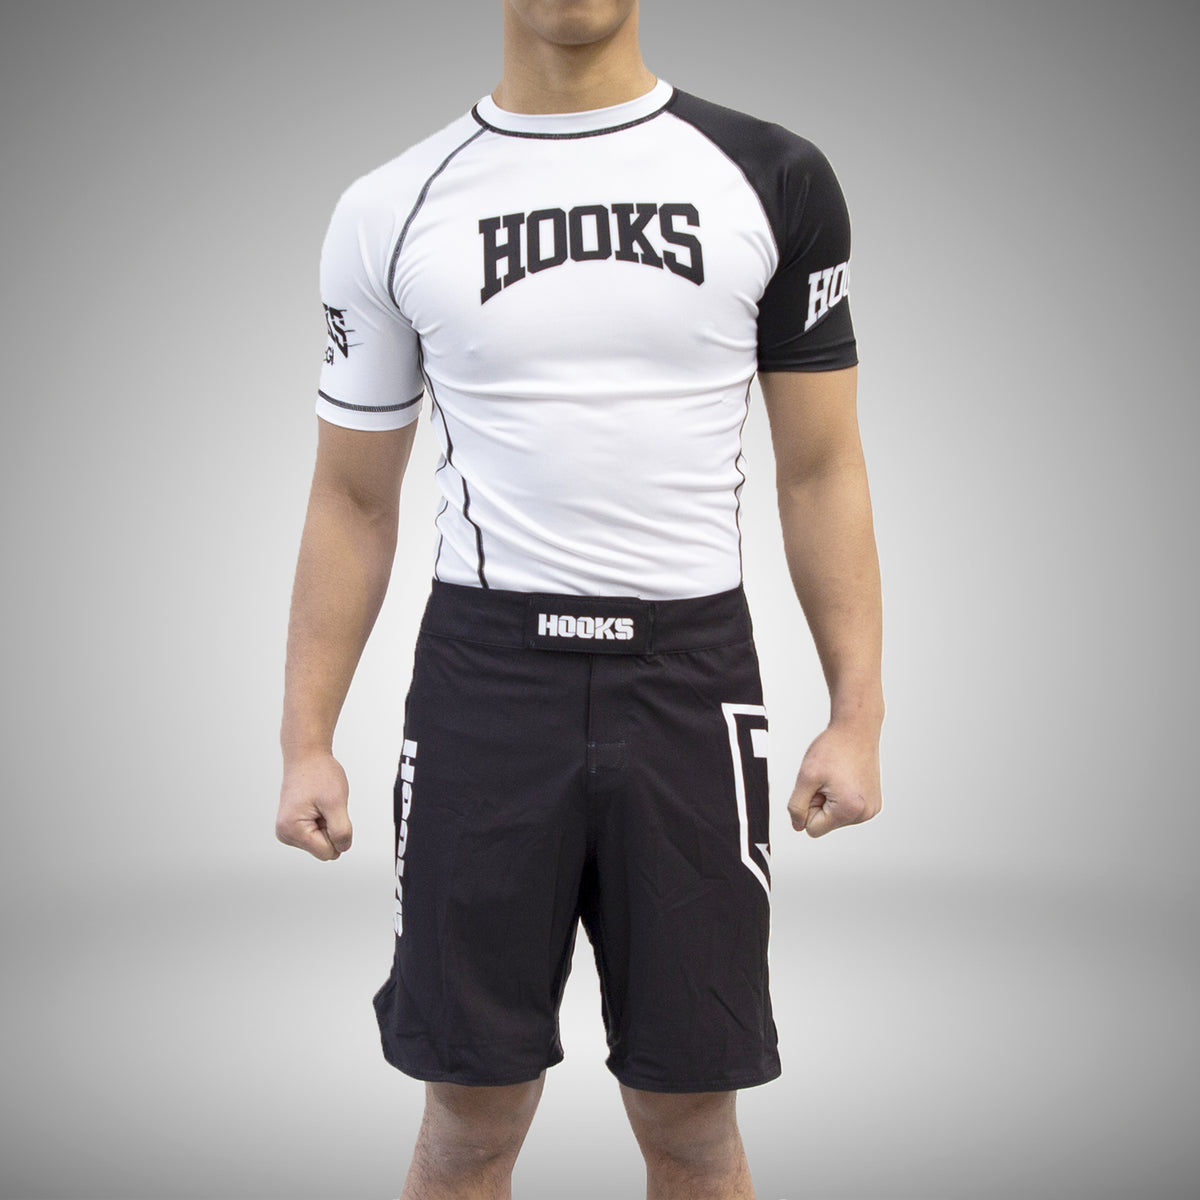 Hooks Pro Light Rashguard - White